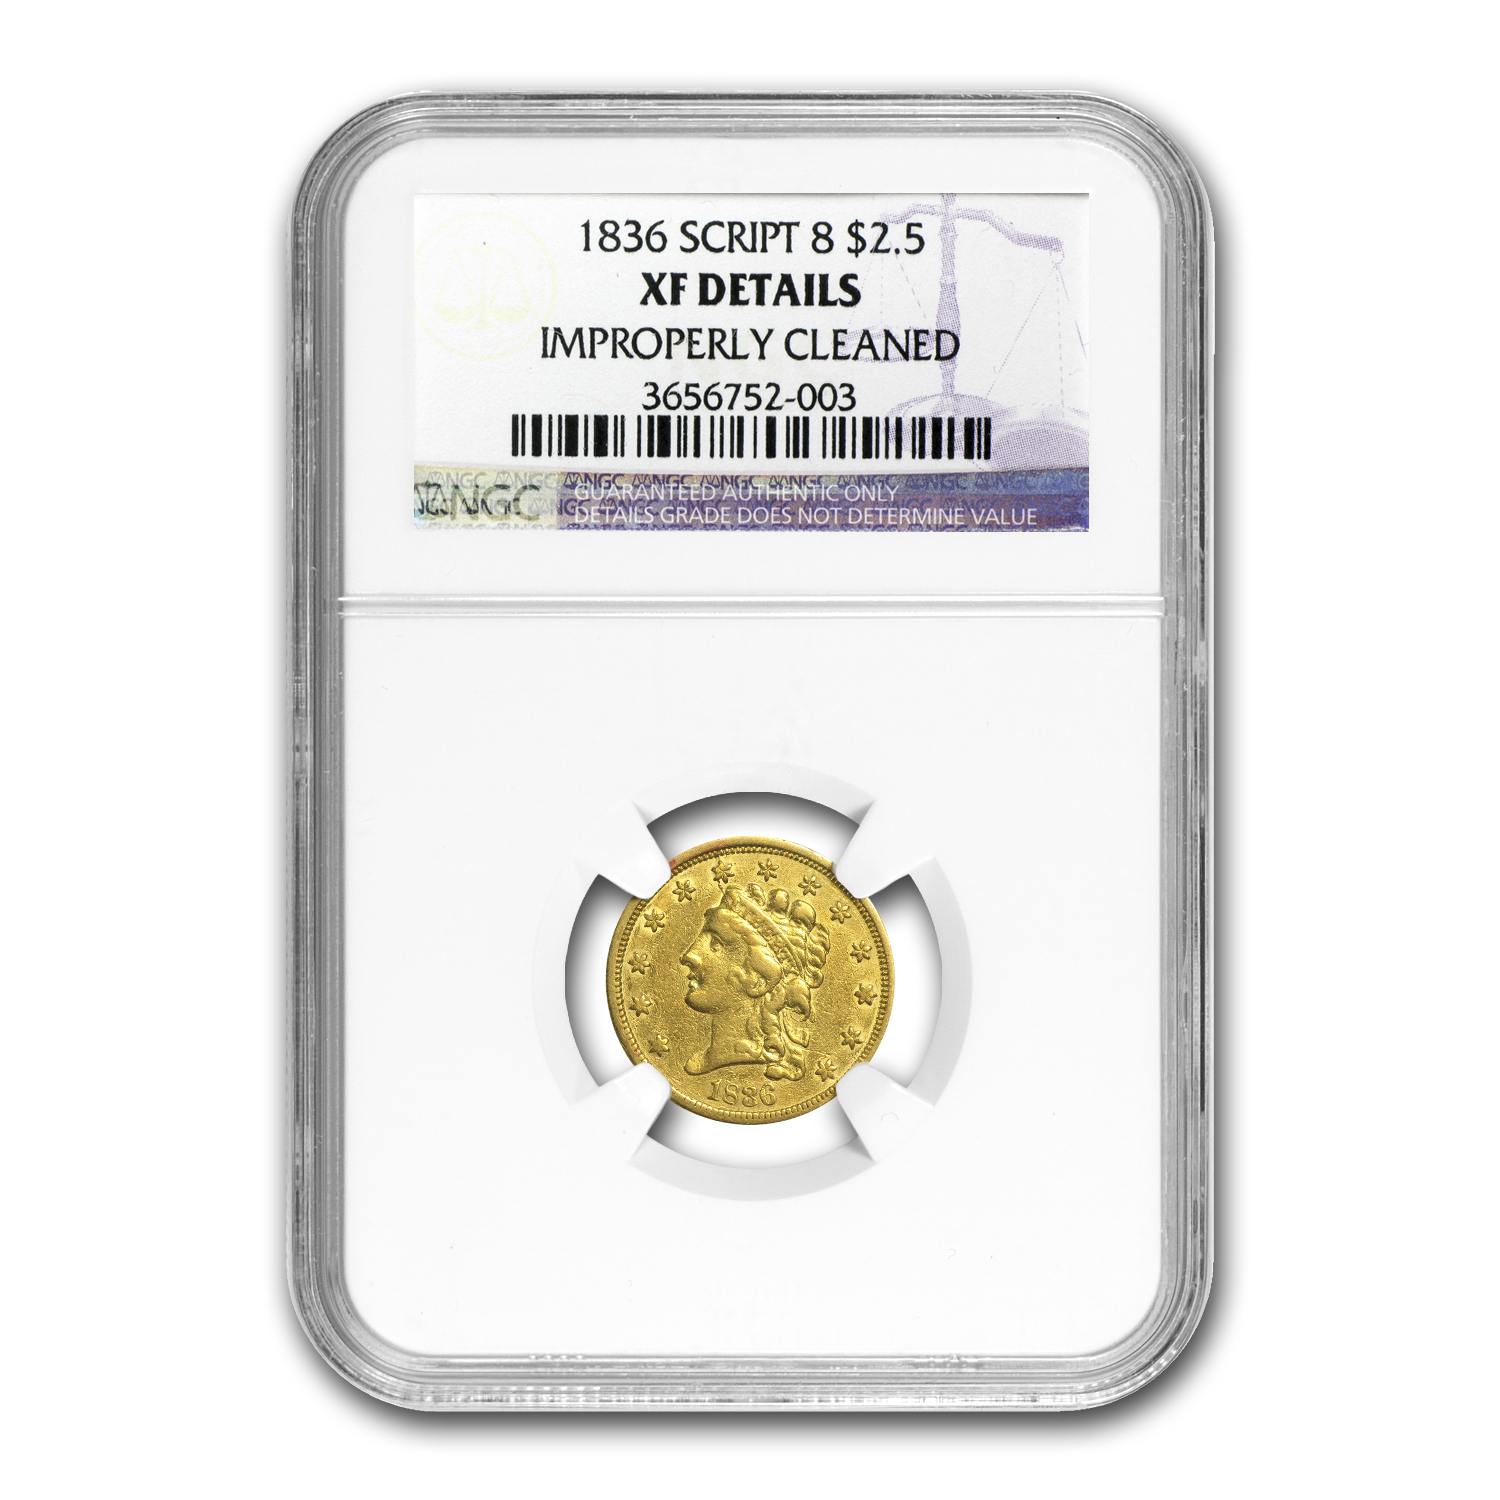 1836 $2.50 Gold Classic Head Script 8 XF Details NGC (Cleaned)